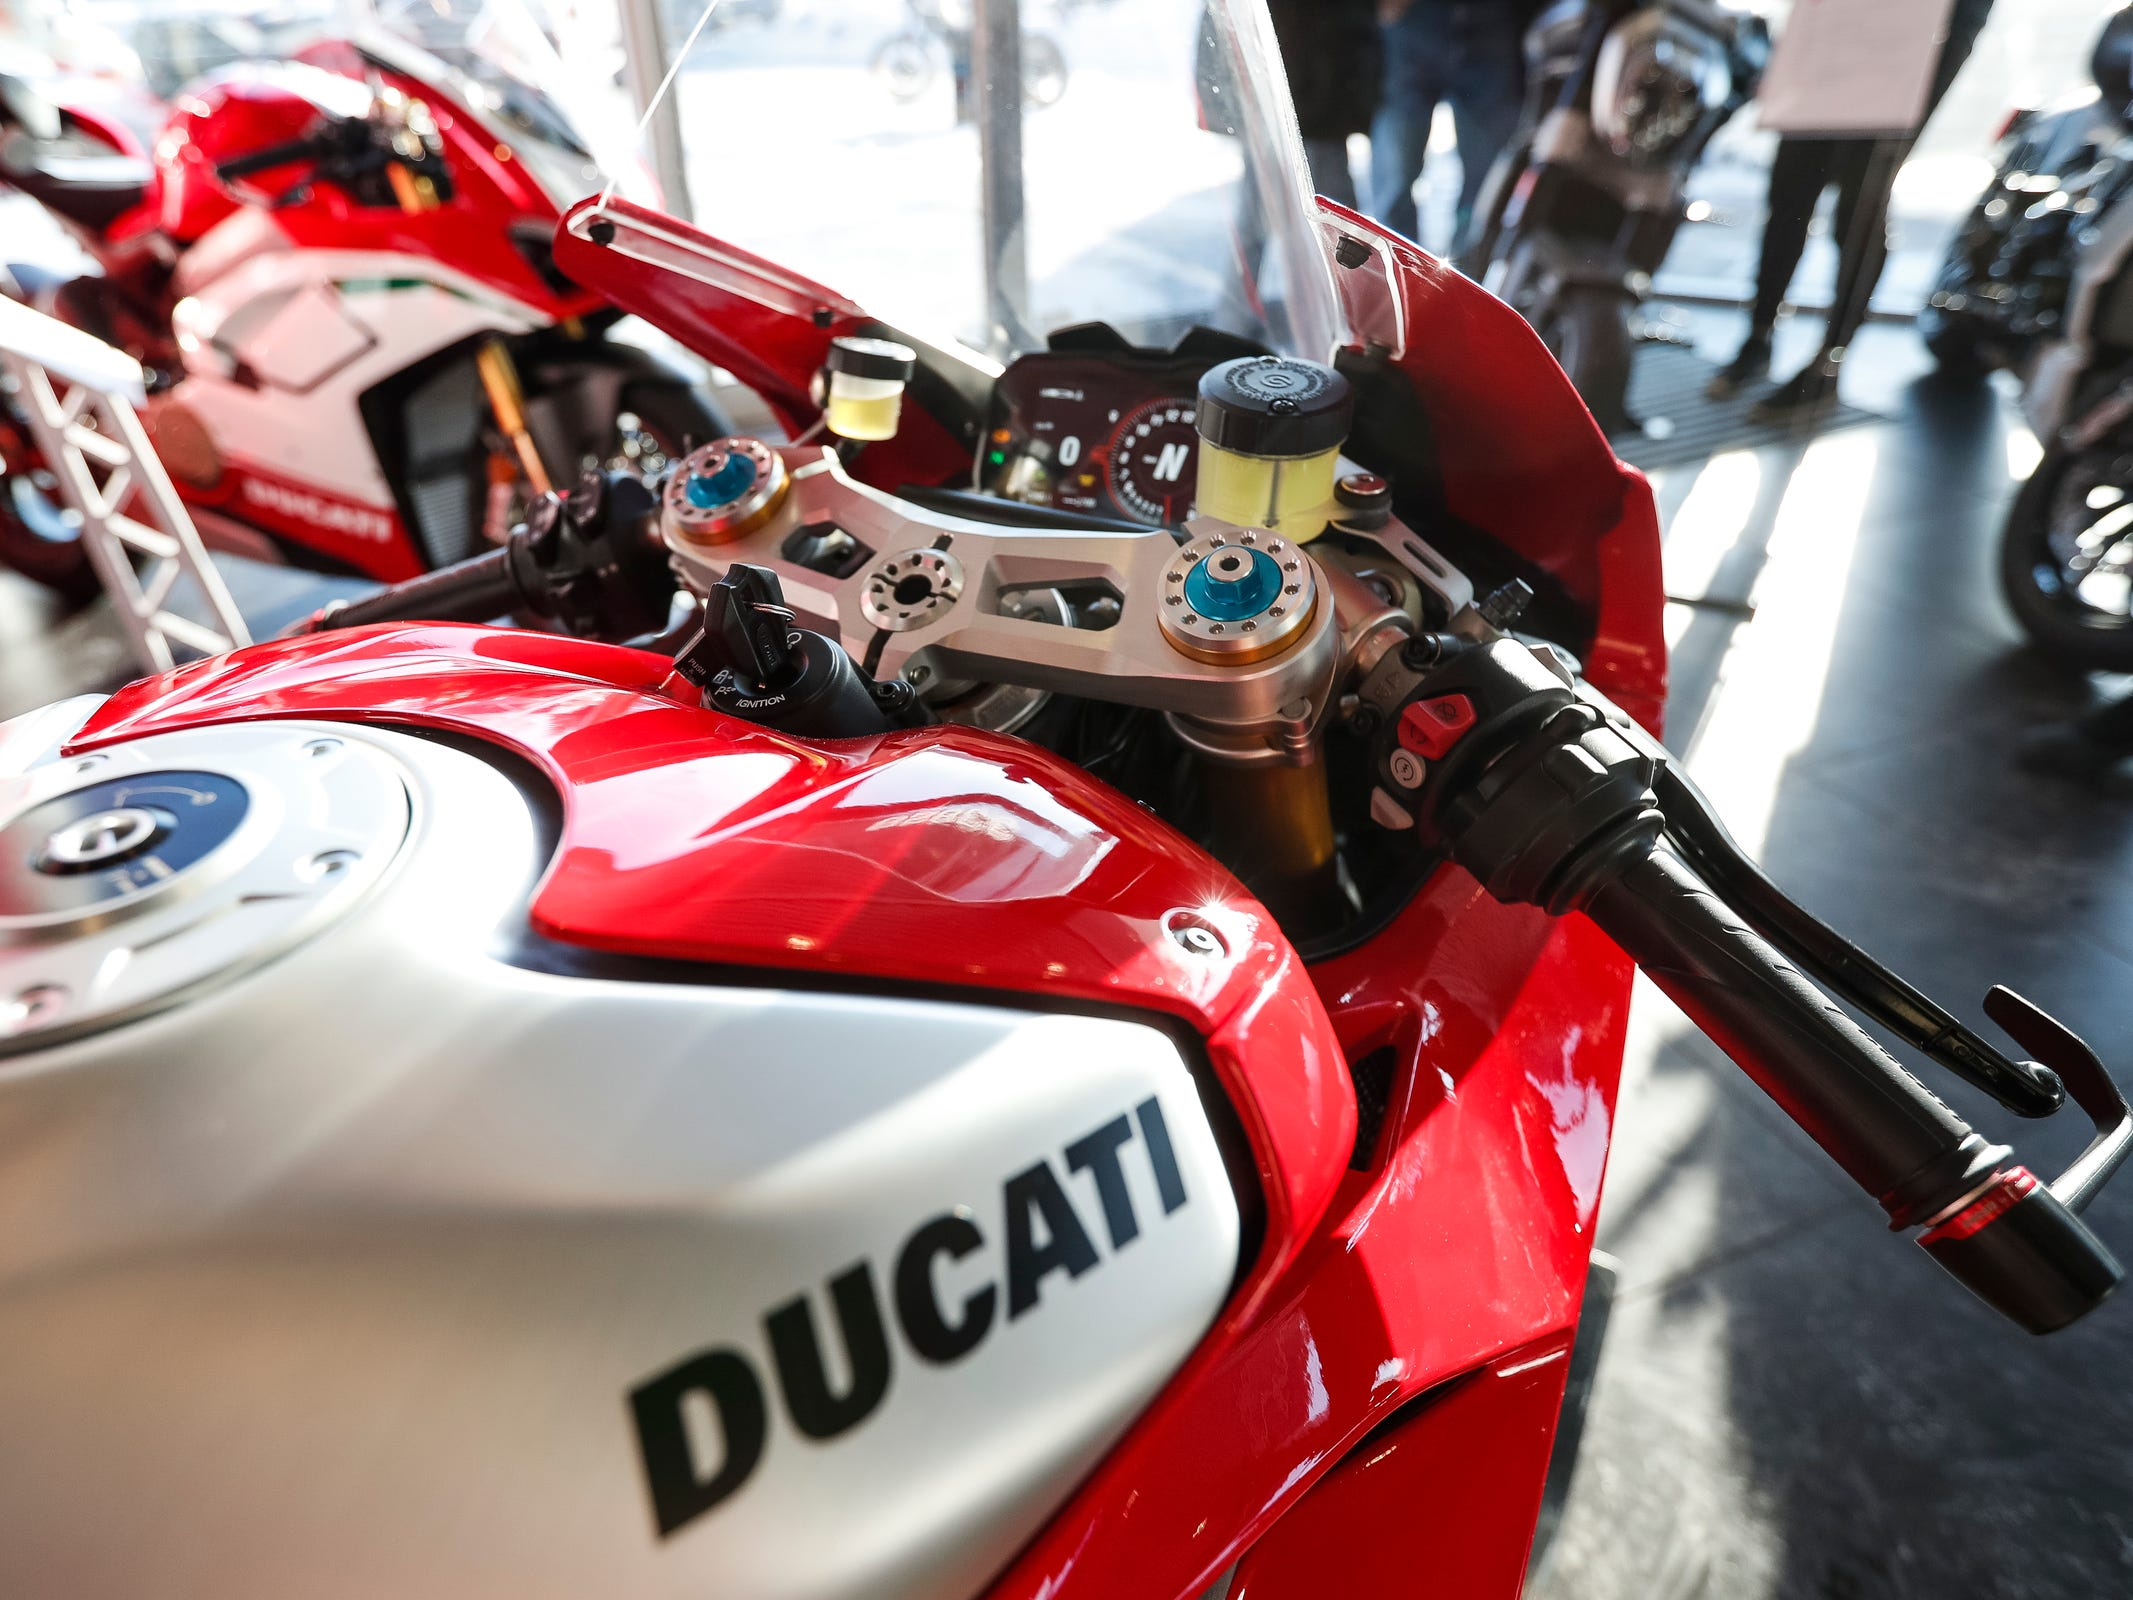 Dash and gas tank of the Ducati 2019 Panigale V4 R.